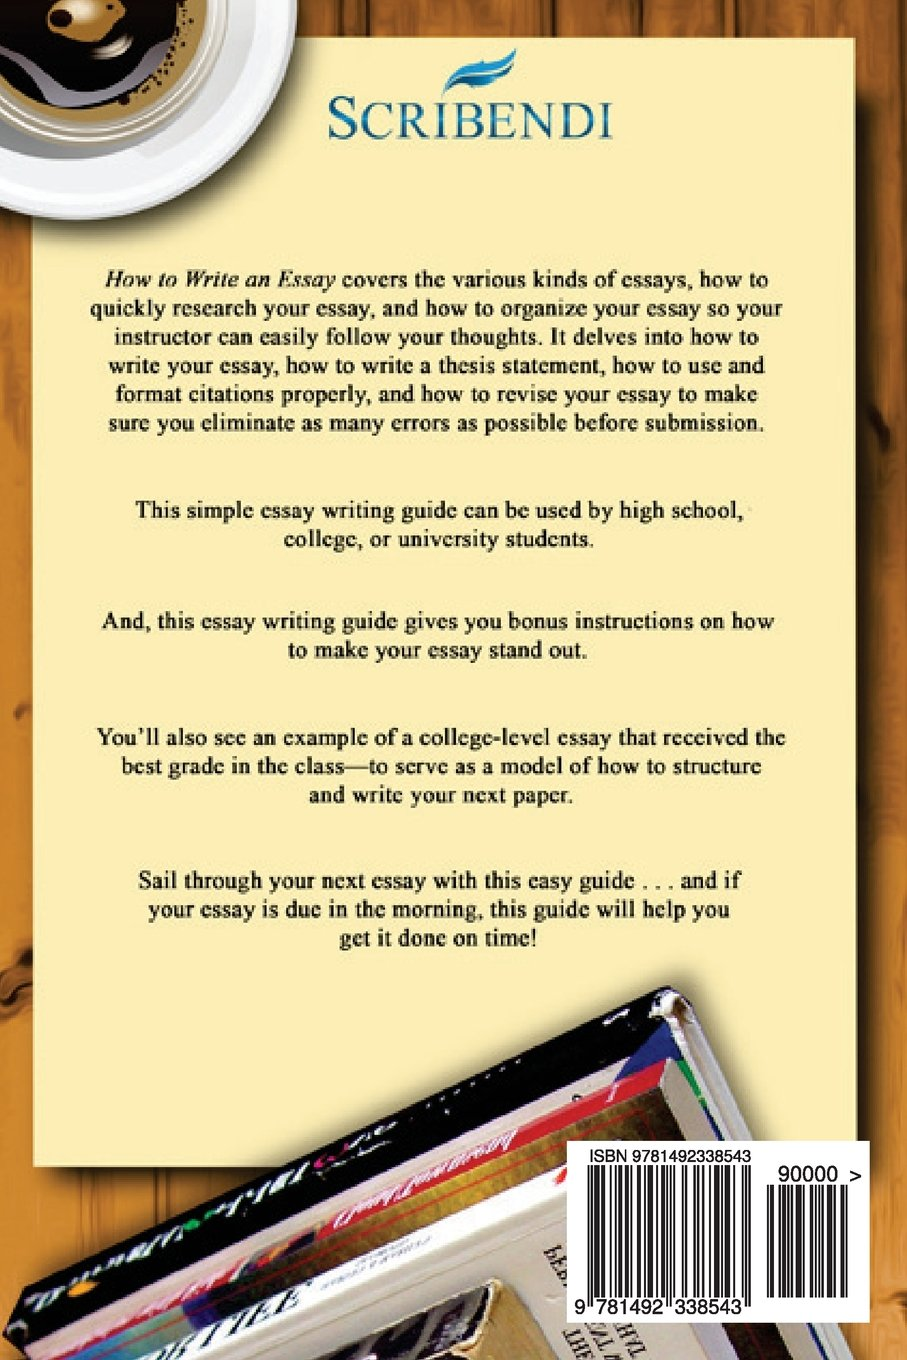 how to write an essay in five easy steps scribendi 9781492338543 how to write an essay in five easy steps scribendi 9781492338543 com books